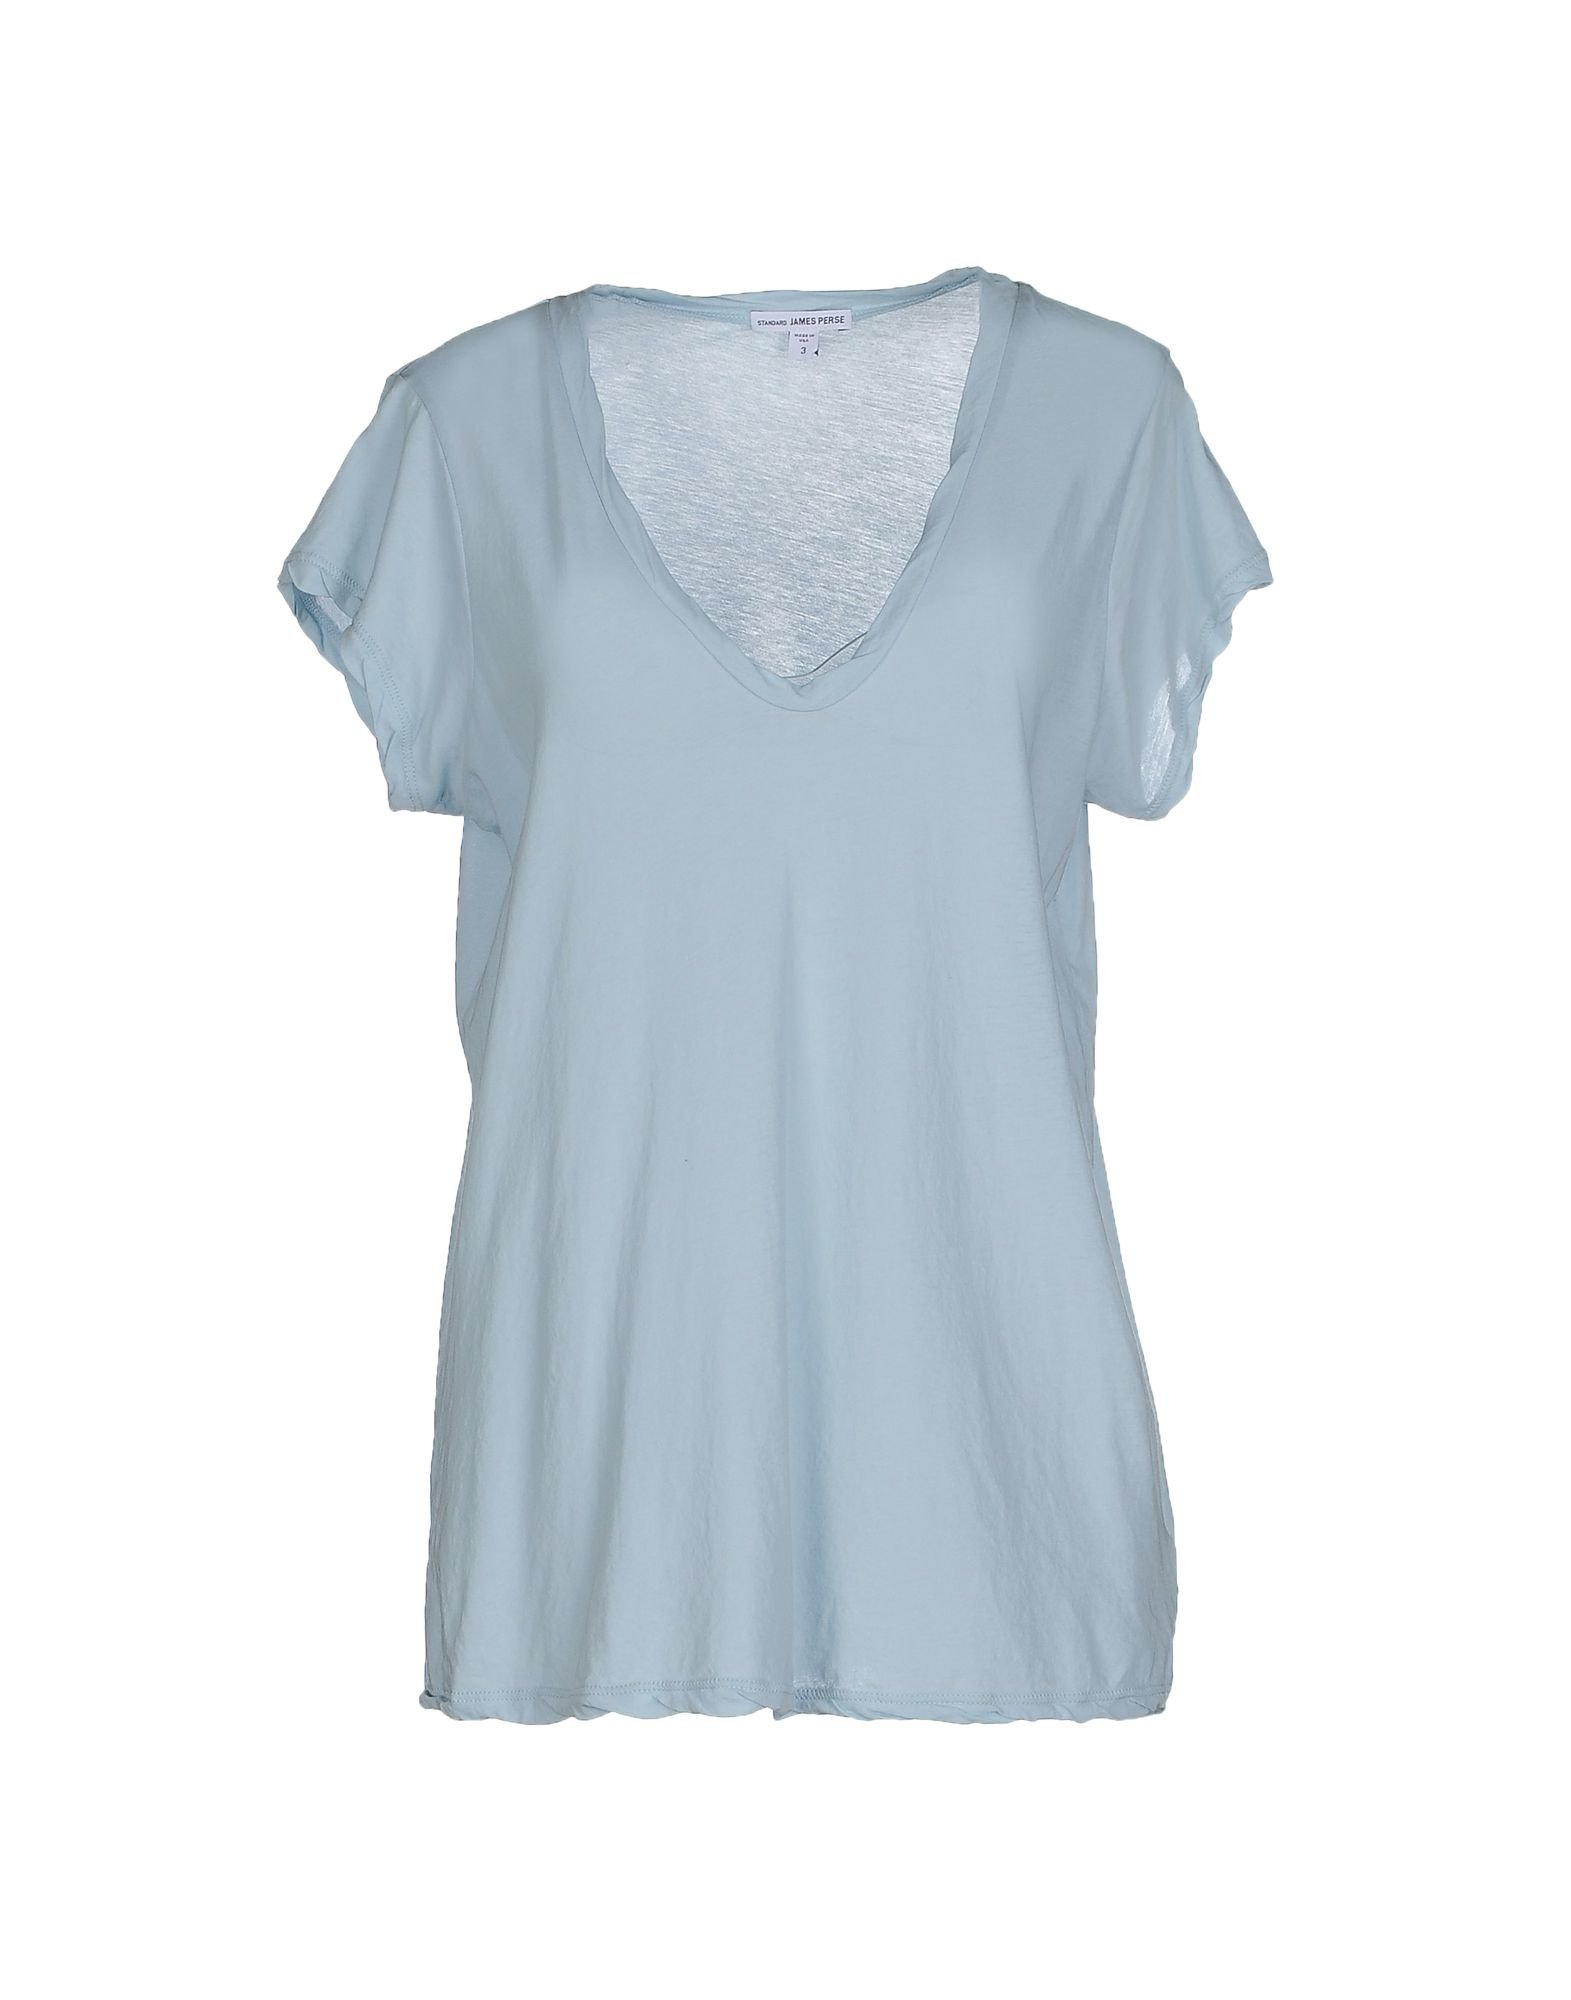 James perse t shirt in blue sky blue lyst for James perse t shirts sale